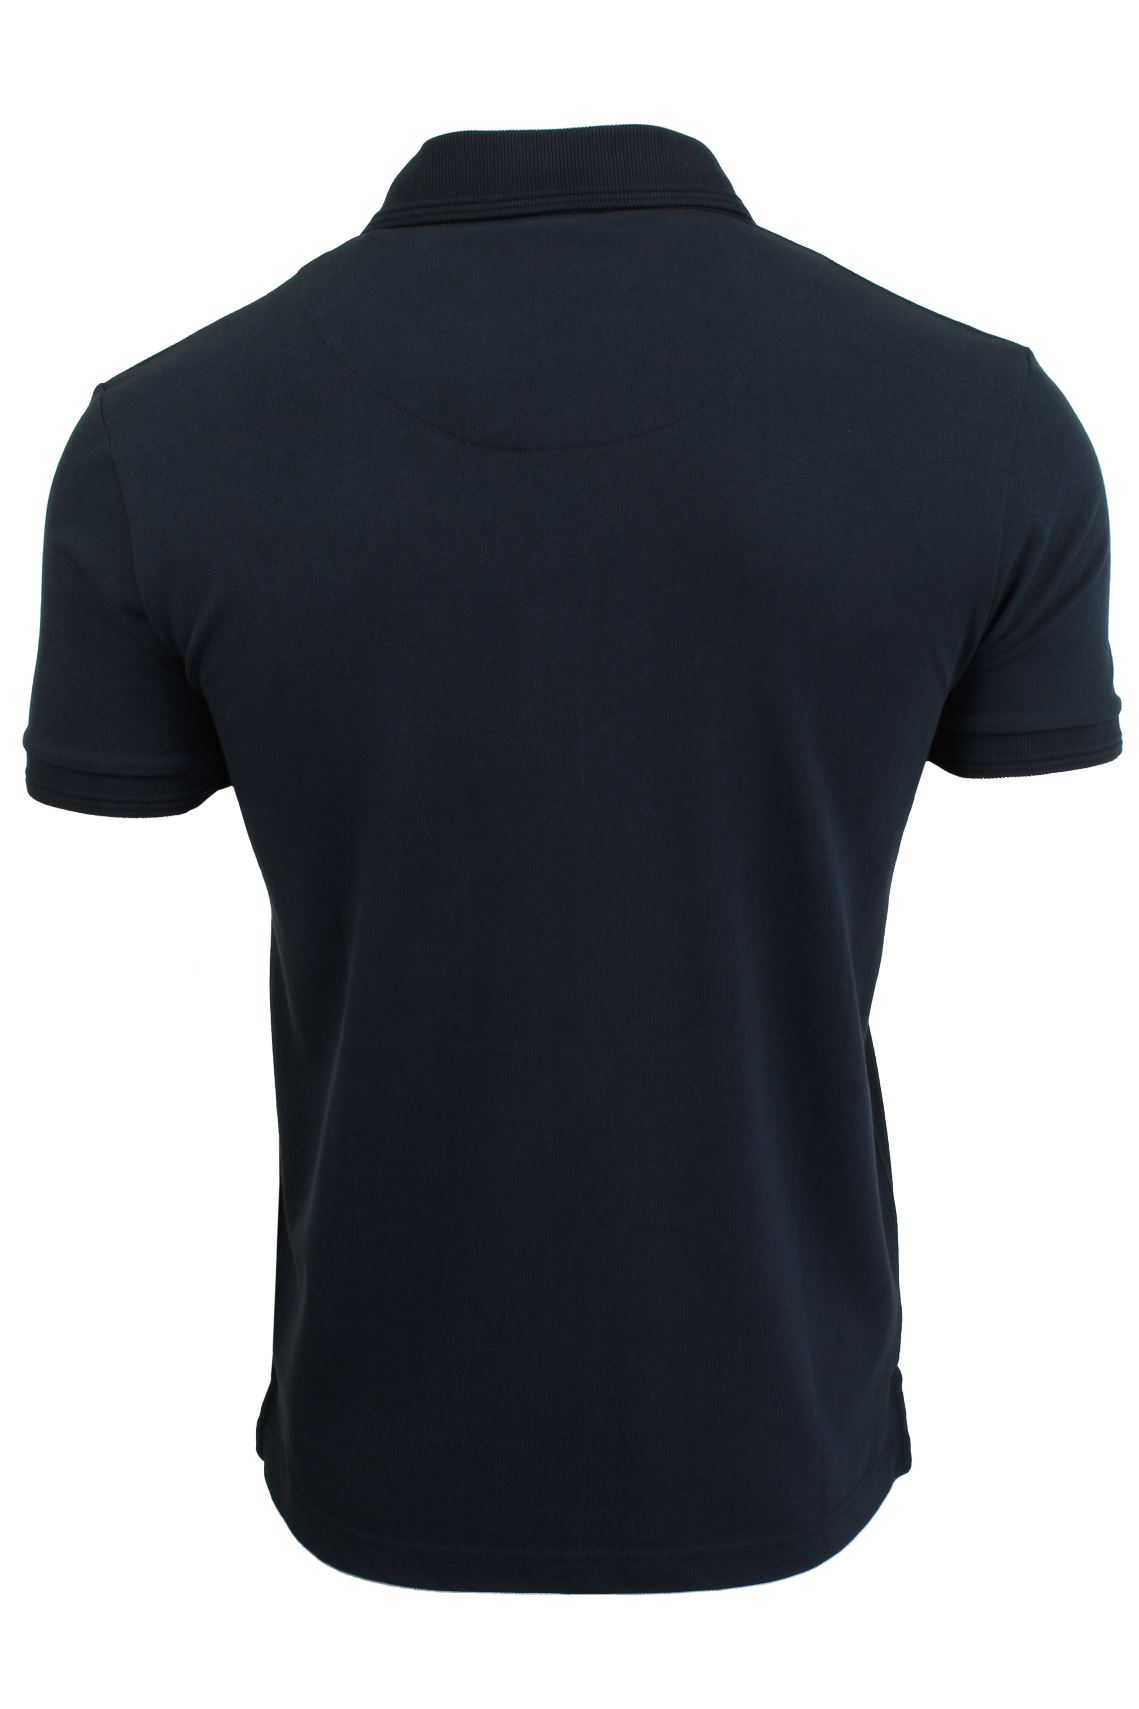 Mens-Short-Sleeved-Polo-Shirt-from-the-Blackout-Collection-by-Voi-Jeans thumbnail 10